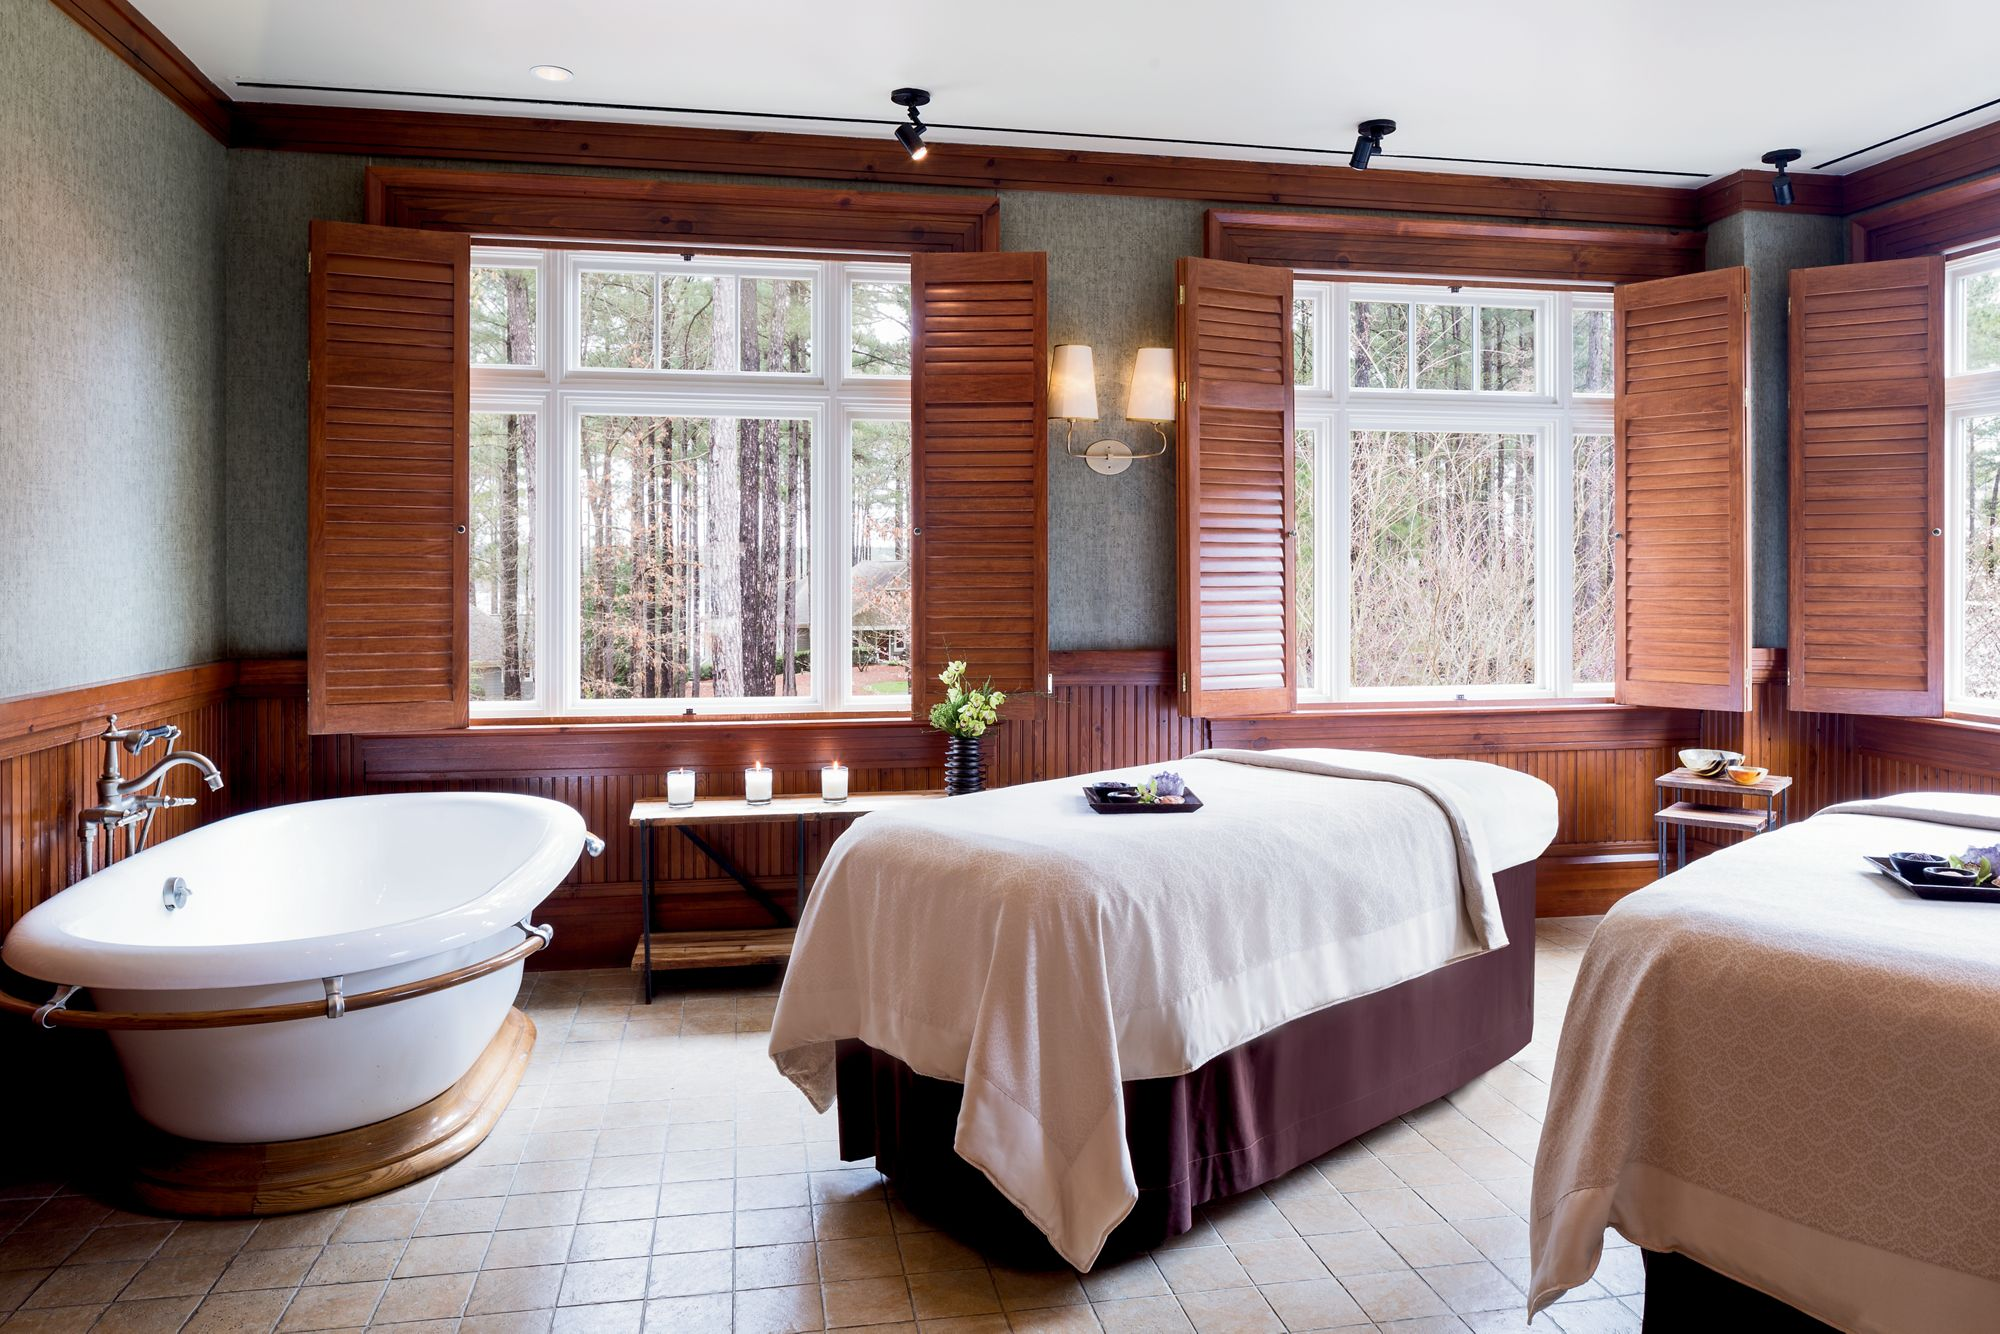 Two side-by-side massage tables in a room with a bathtub